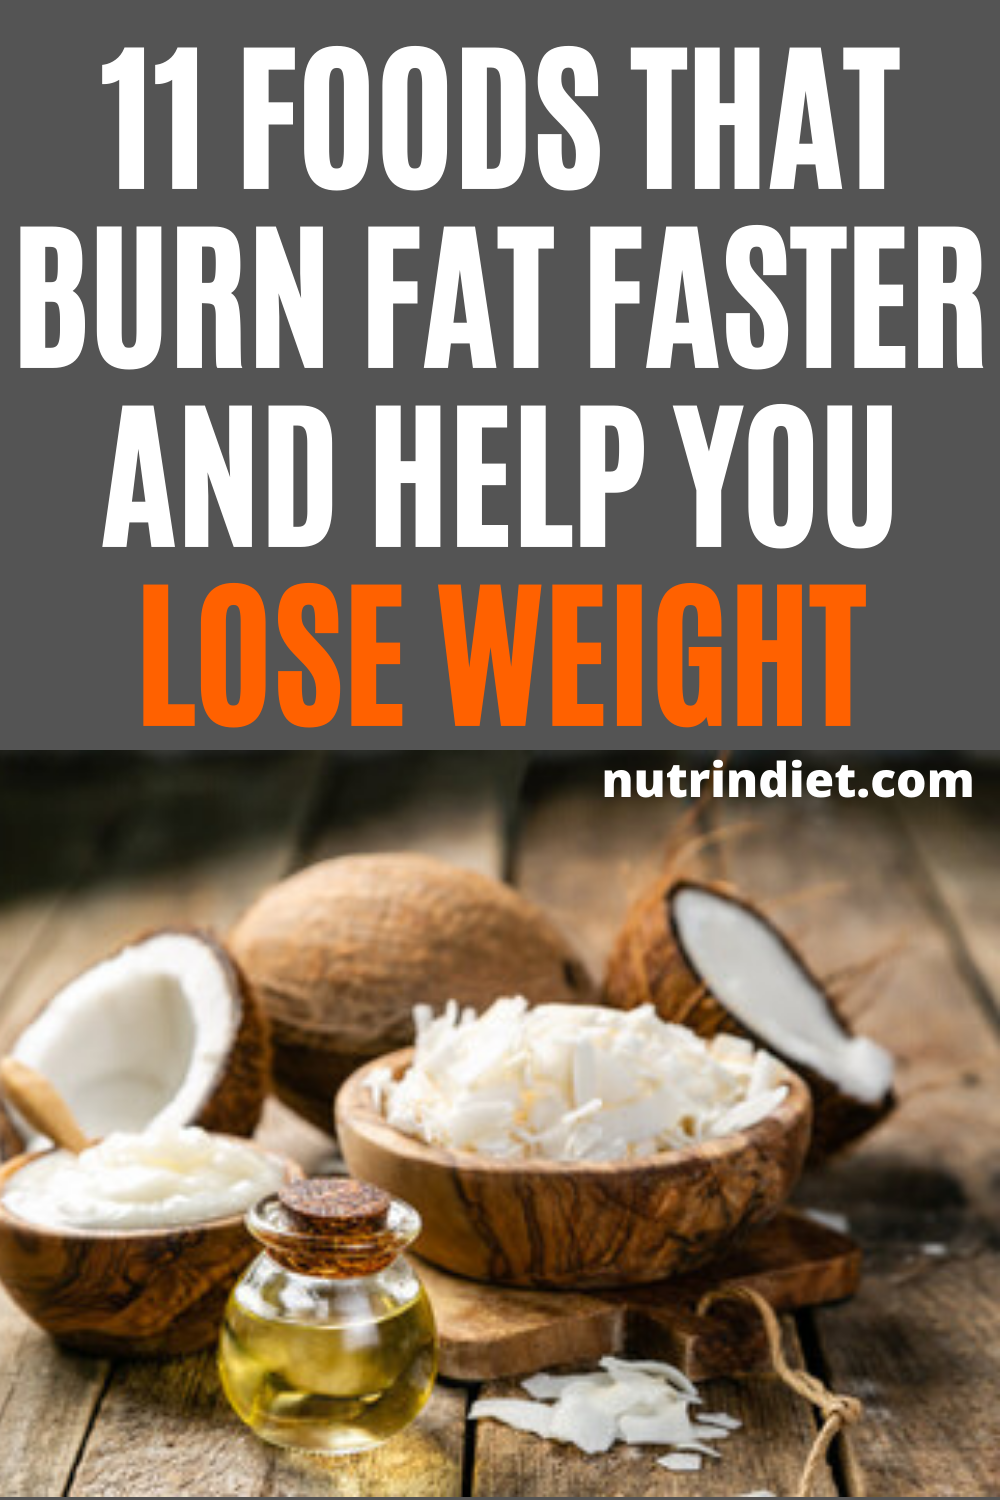 11 Foods That Burn Fat Faster And Help You Lose Weight